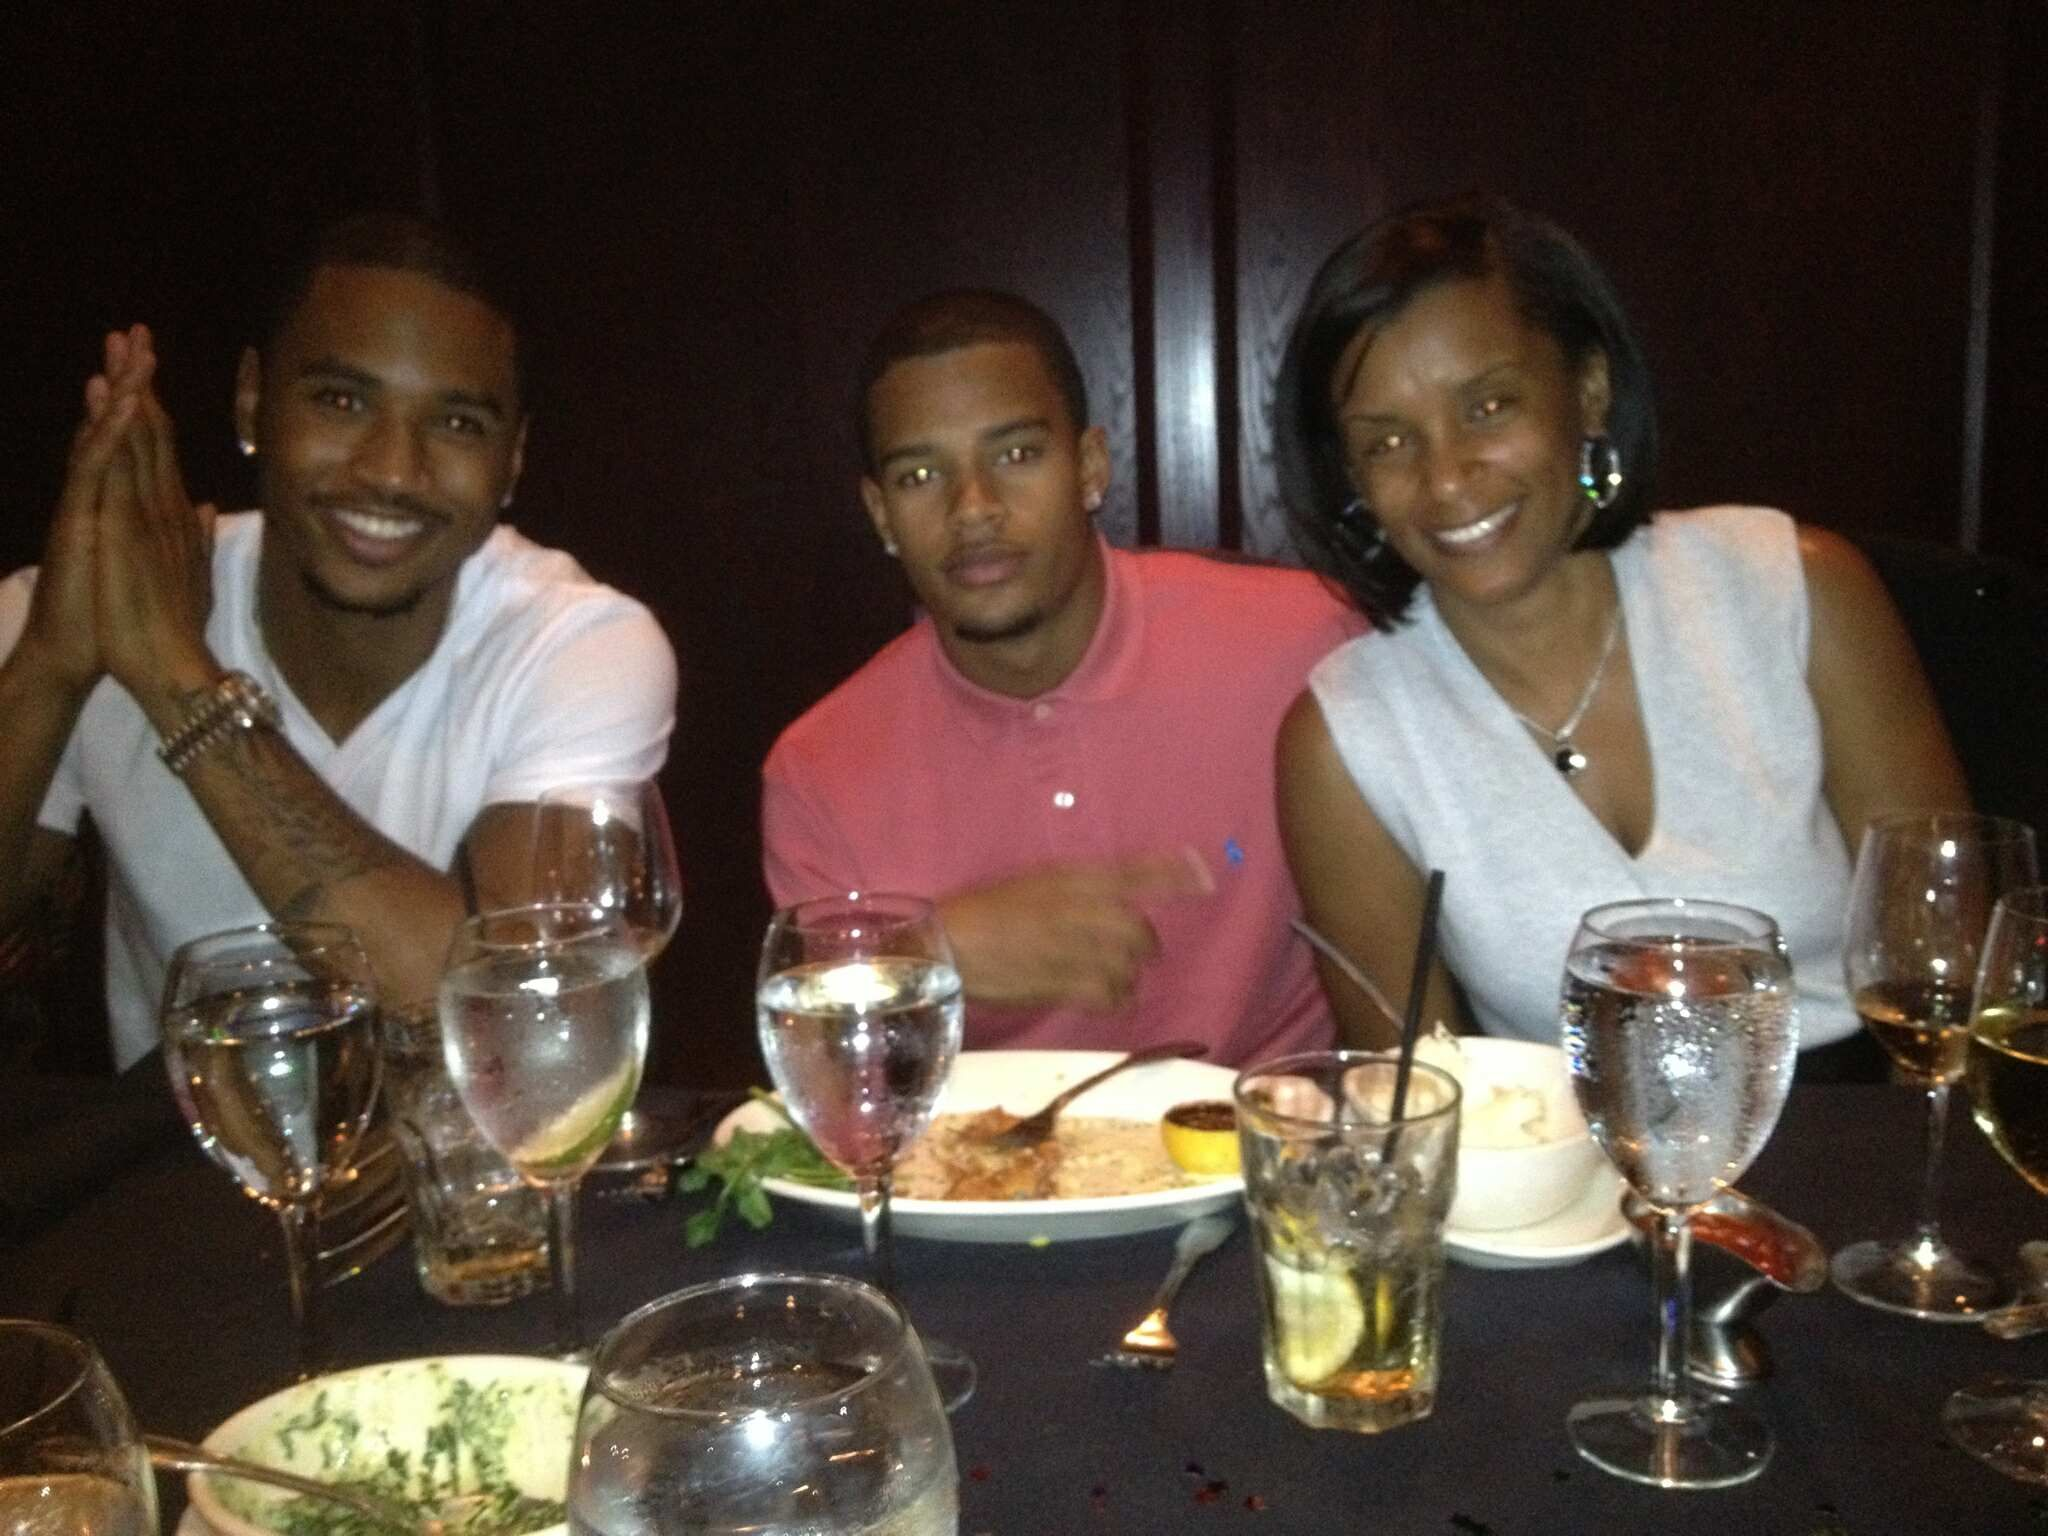 Trey songz his brother forrest their mom april spotlight trey songz his brother forrest their mom april nvjuhfo Gallery